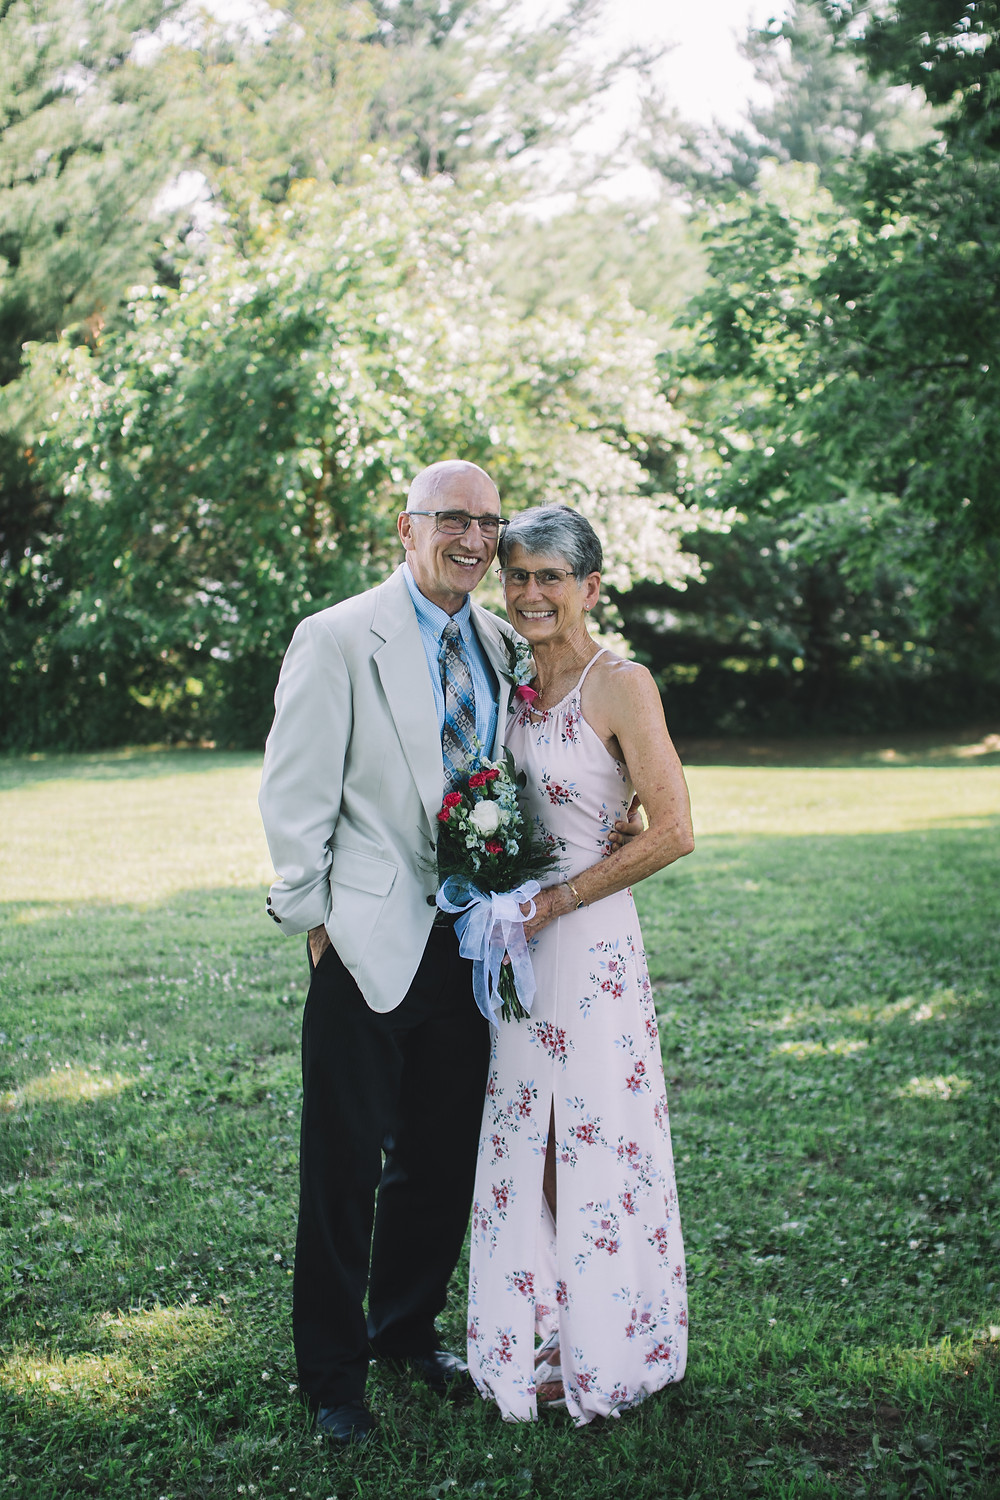 Wedding Photography | Bride + Groom | Springfield | Bride | Illinois | IL | Lincoln | Soul Focus | Lake Springfield Christian Assembly